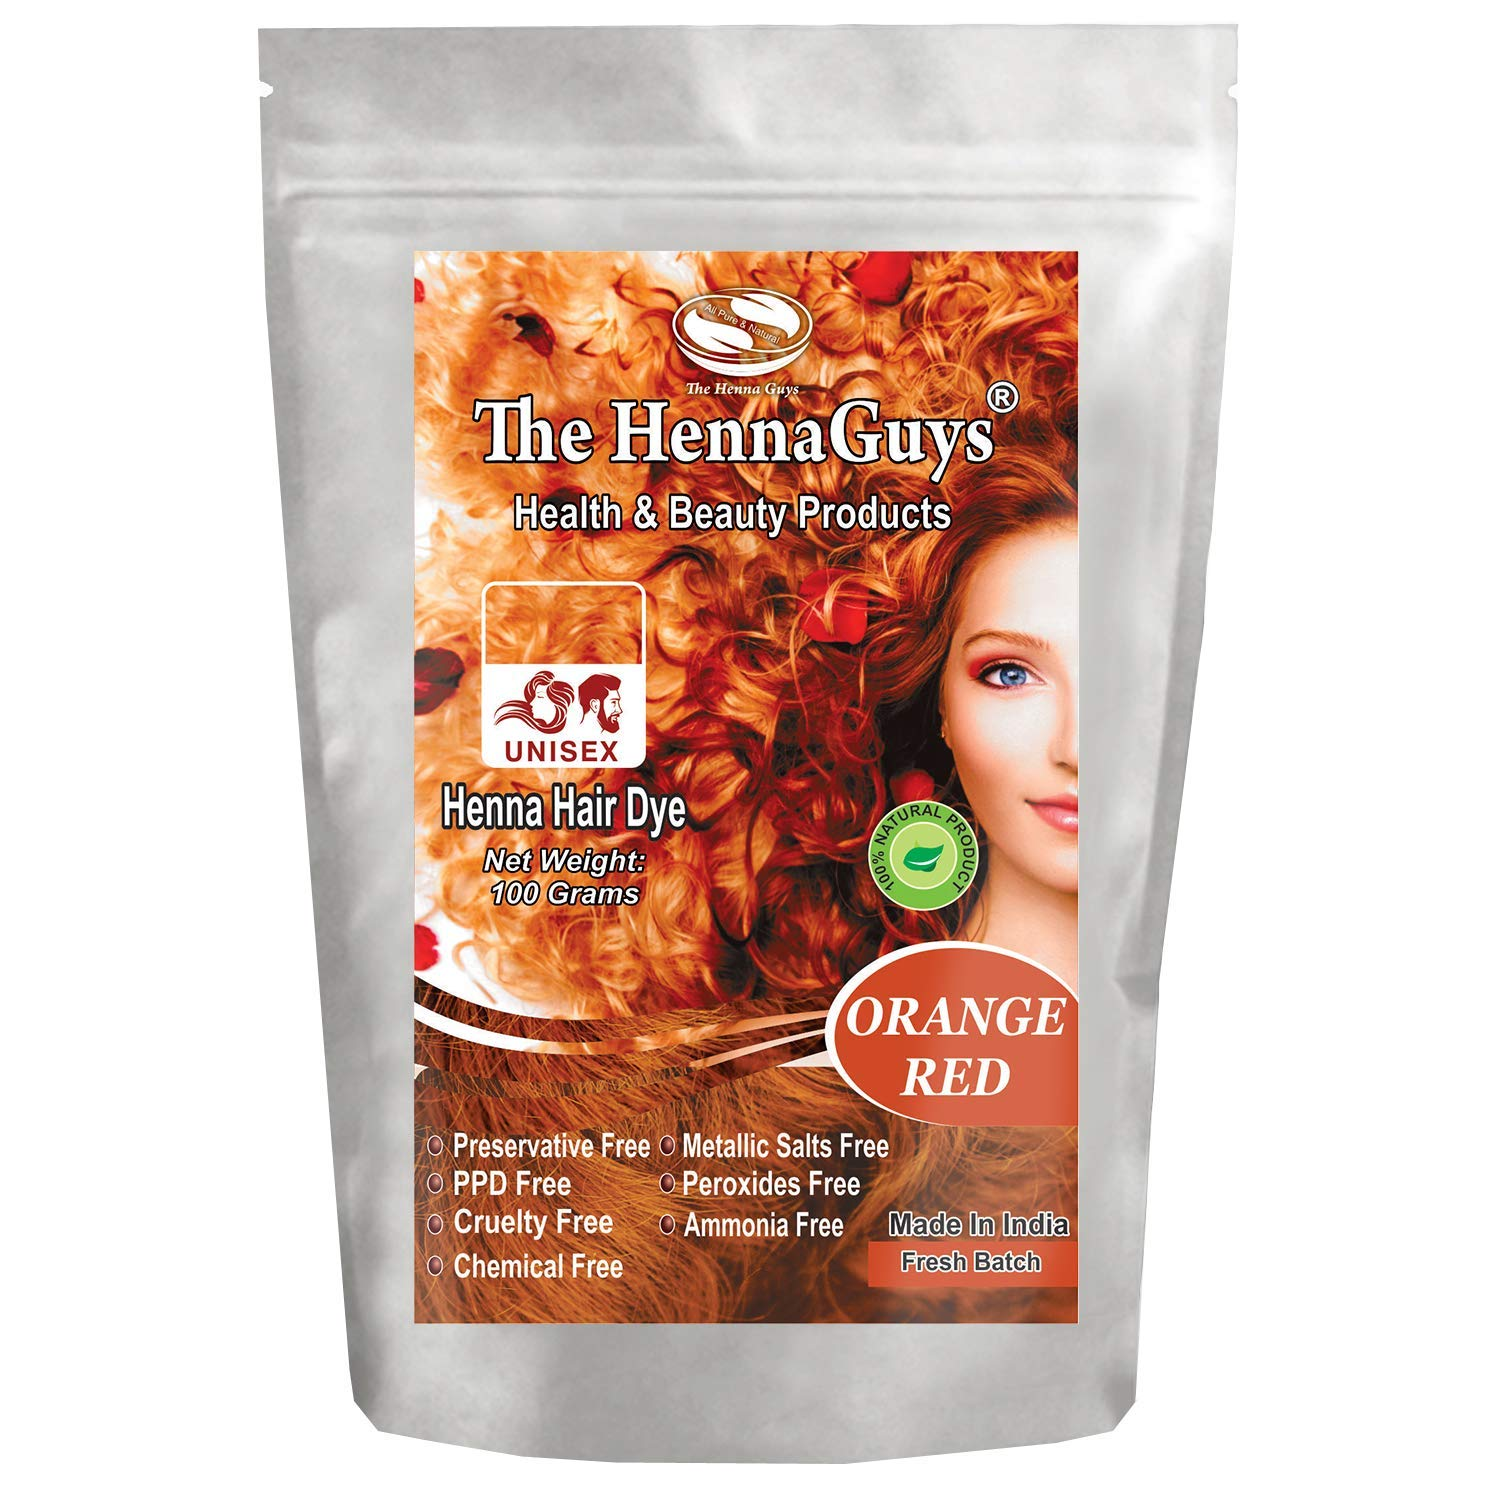 Red/Orange Henna Hair Dye/Color - 1 Pack - The Henna Guys